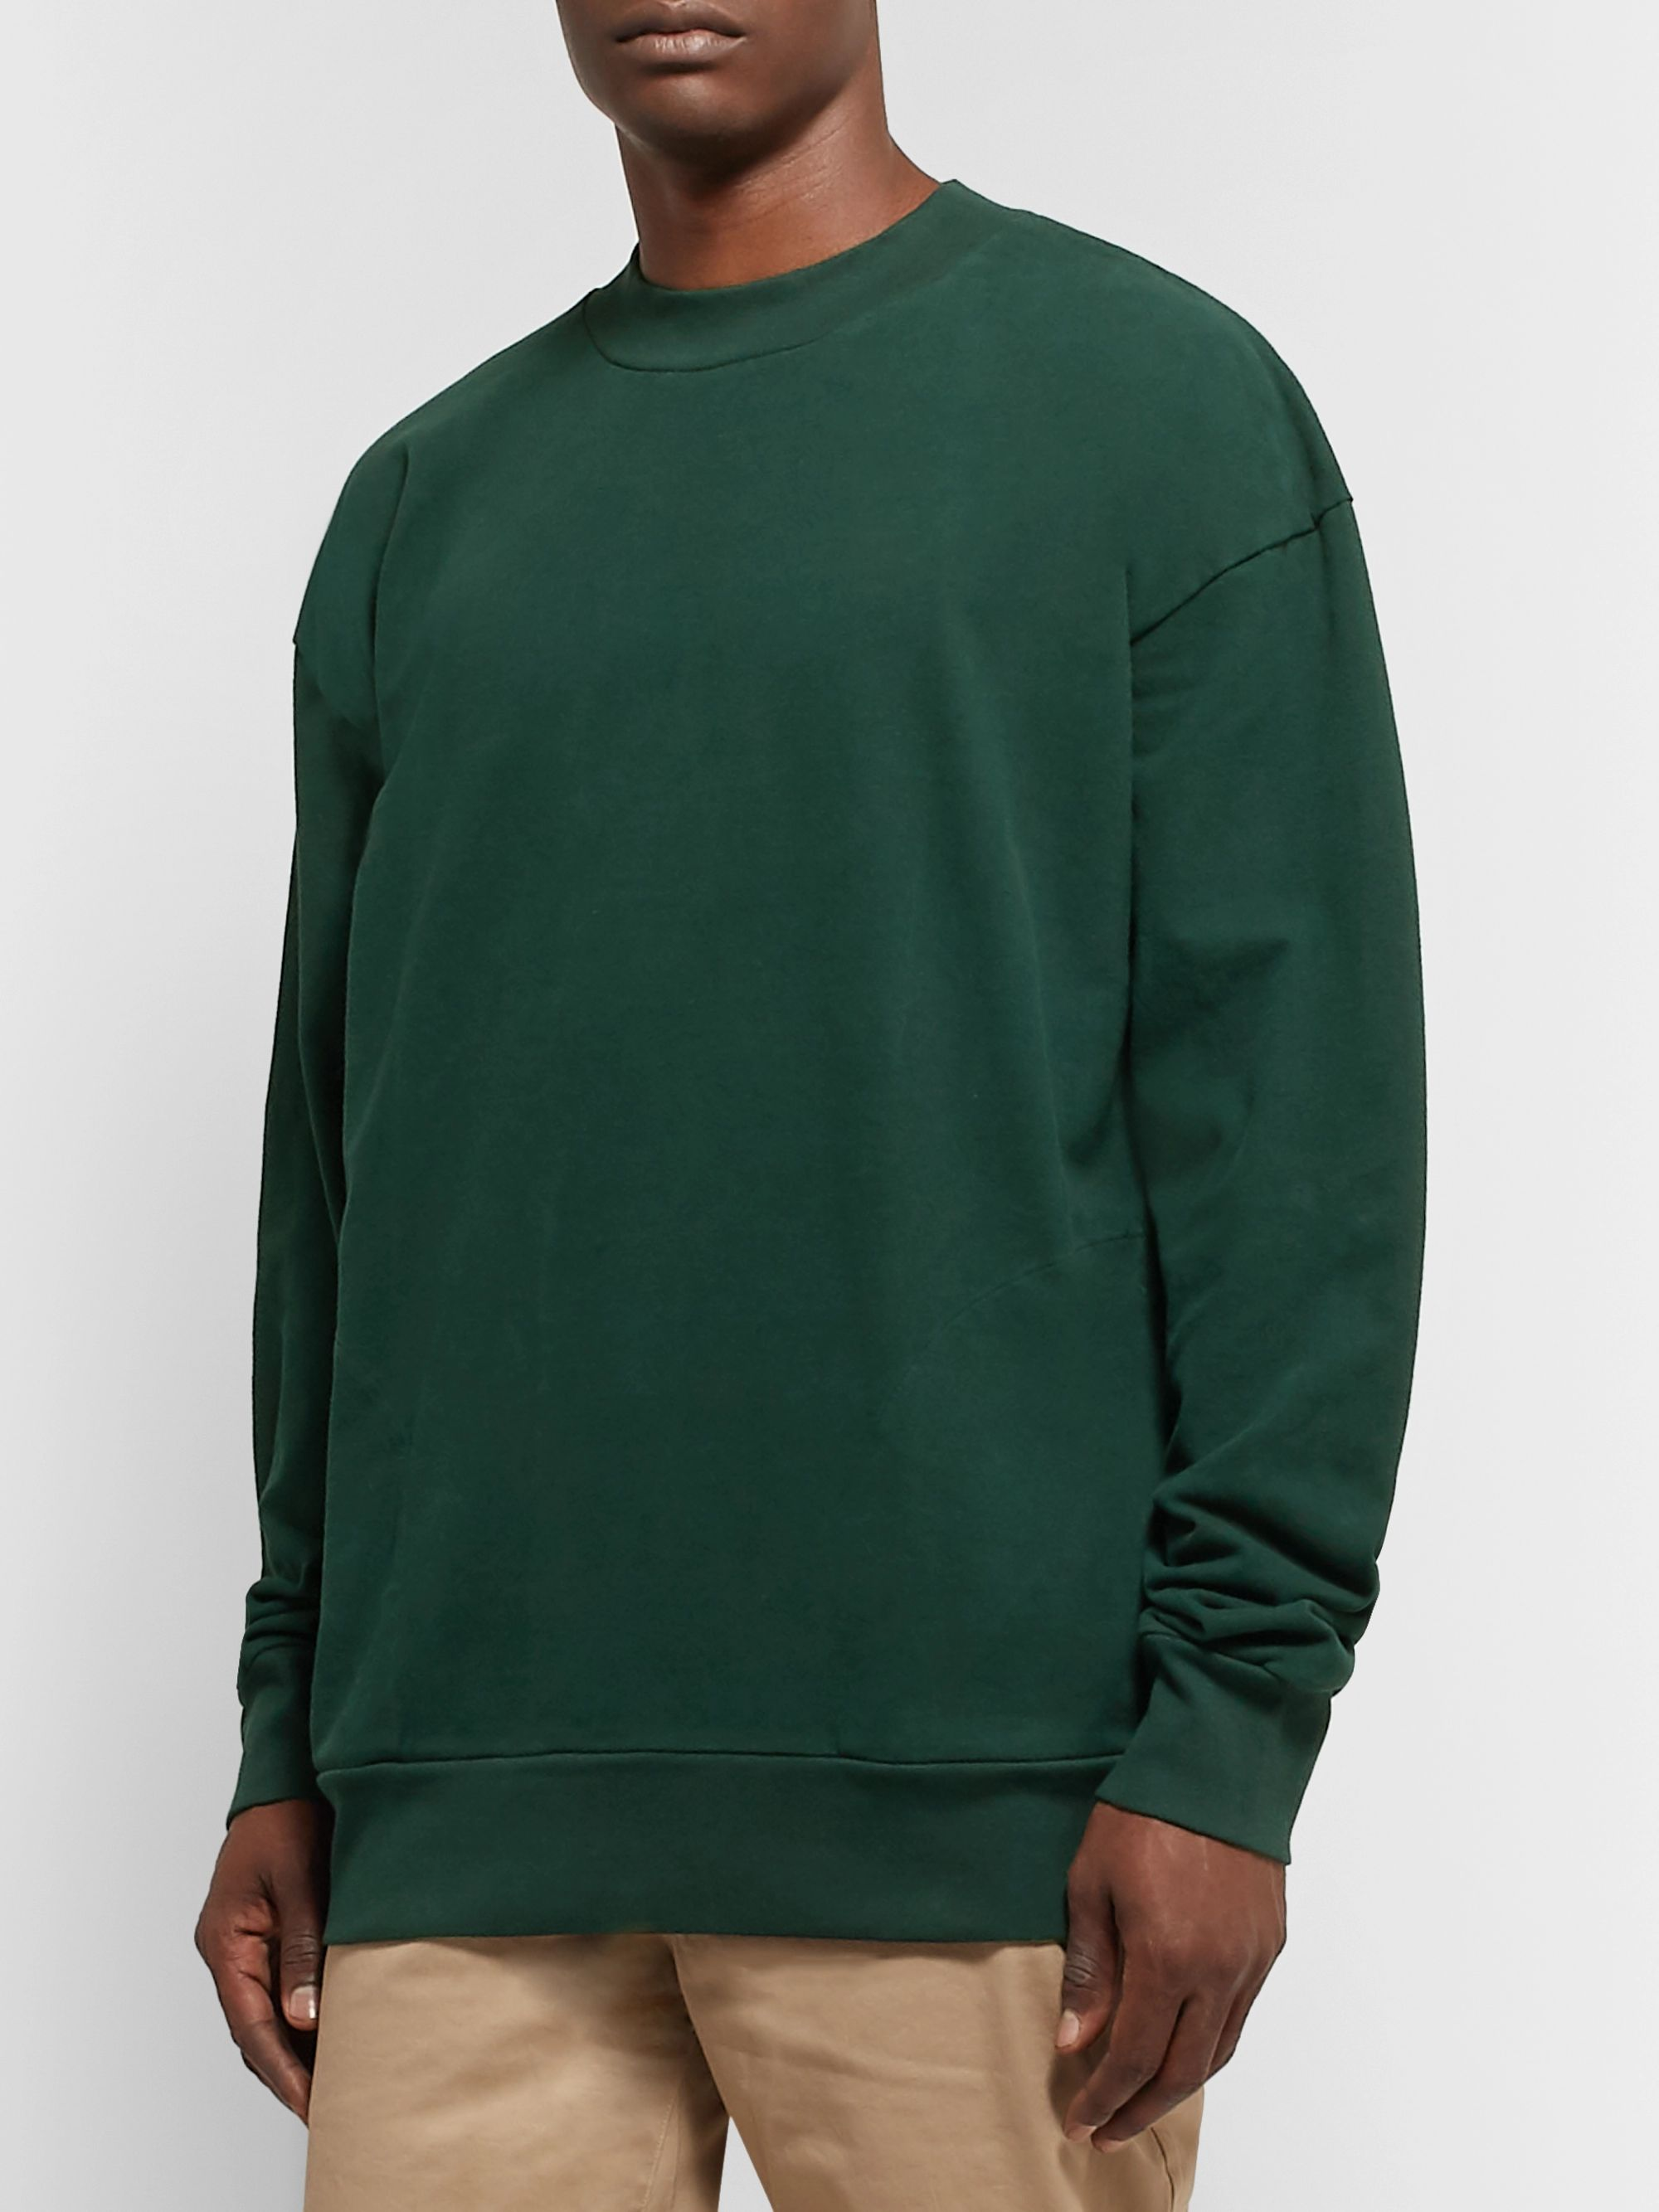 Pilgrim Surf + Supply Alby Brushed Cotton-Jersey Sweatshirt